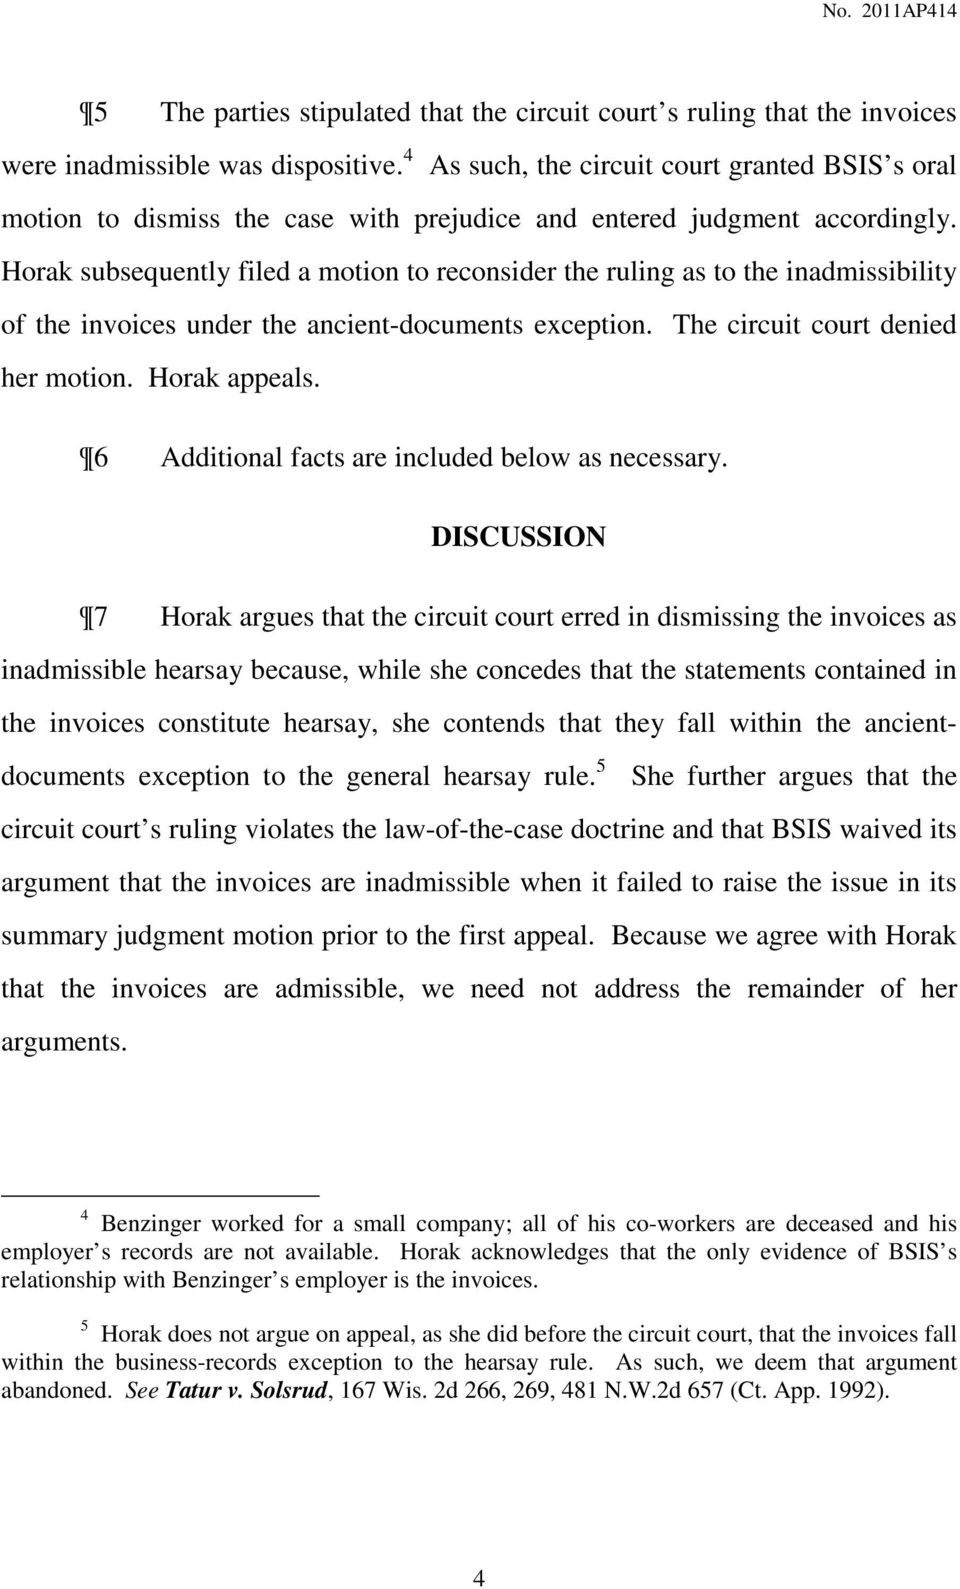 Horak subsequently filed a motion to reconsider the ruling as to the inadmissibility of the invoices under the ancient-documents exception. The circuit court denied her motion. Horak appeals.